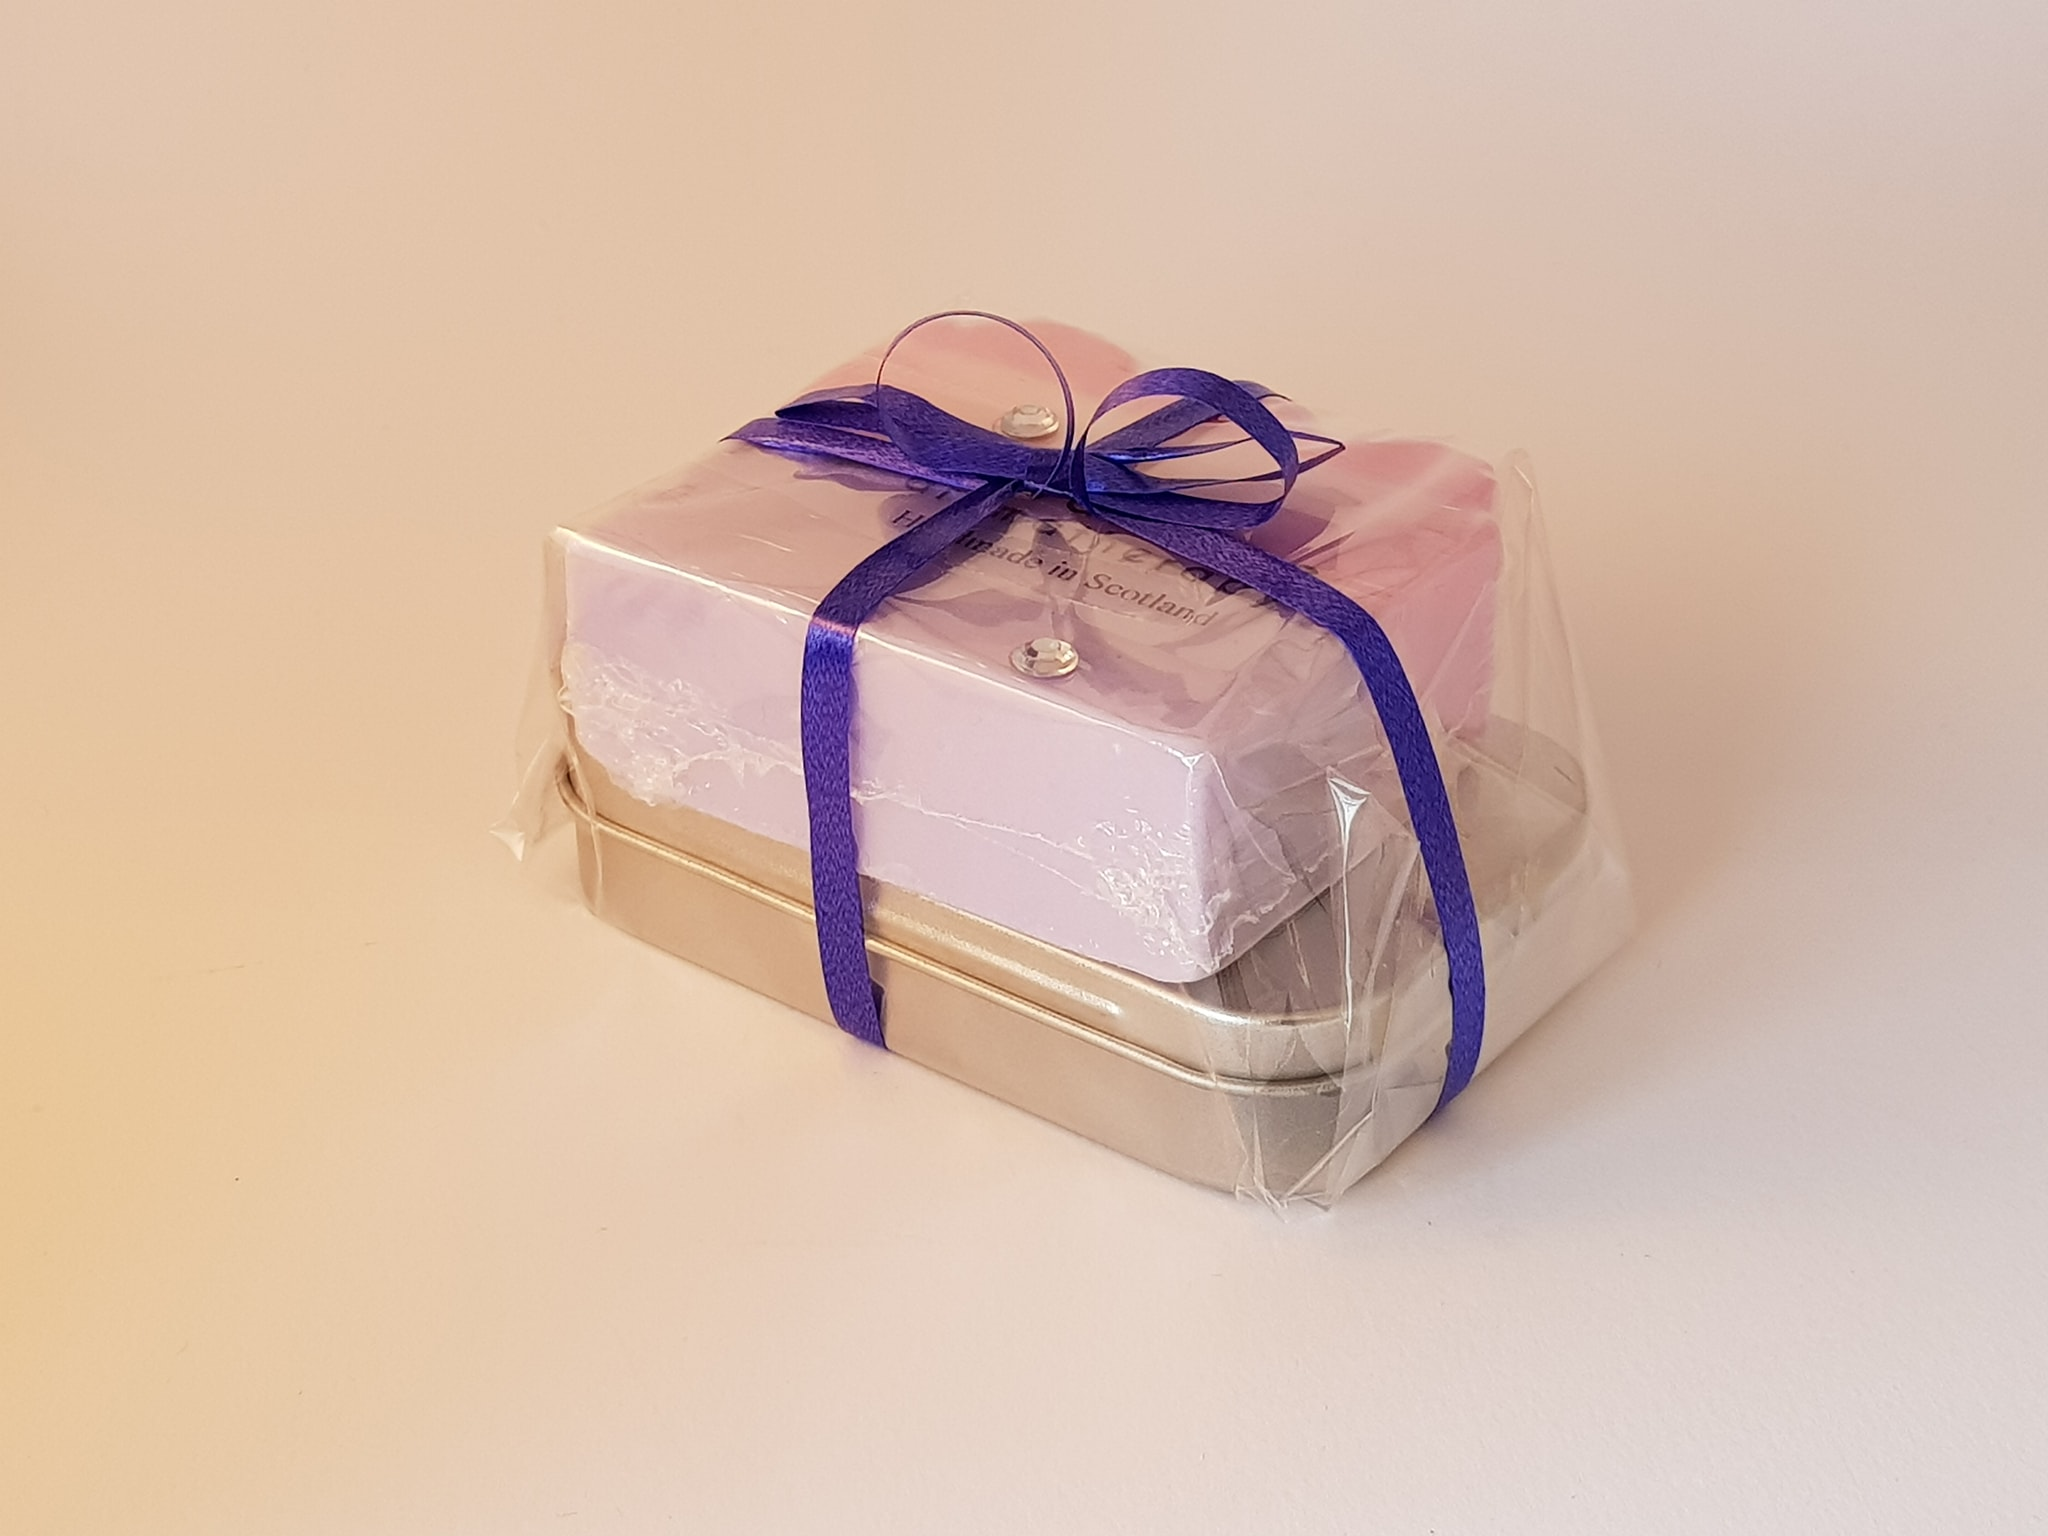 Rose Geranium Gift Set